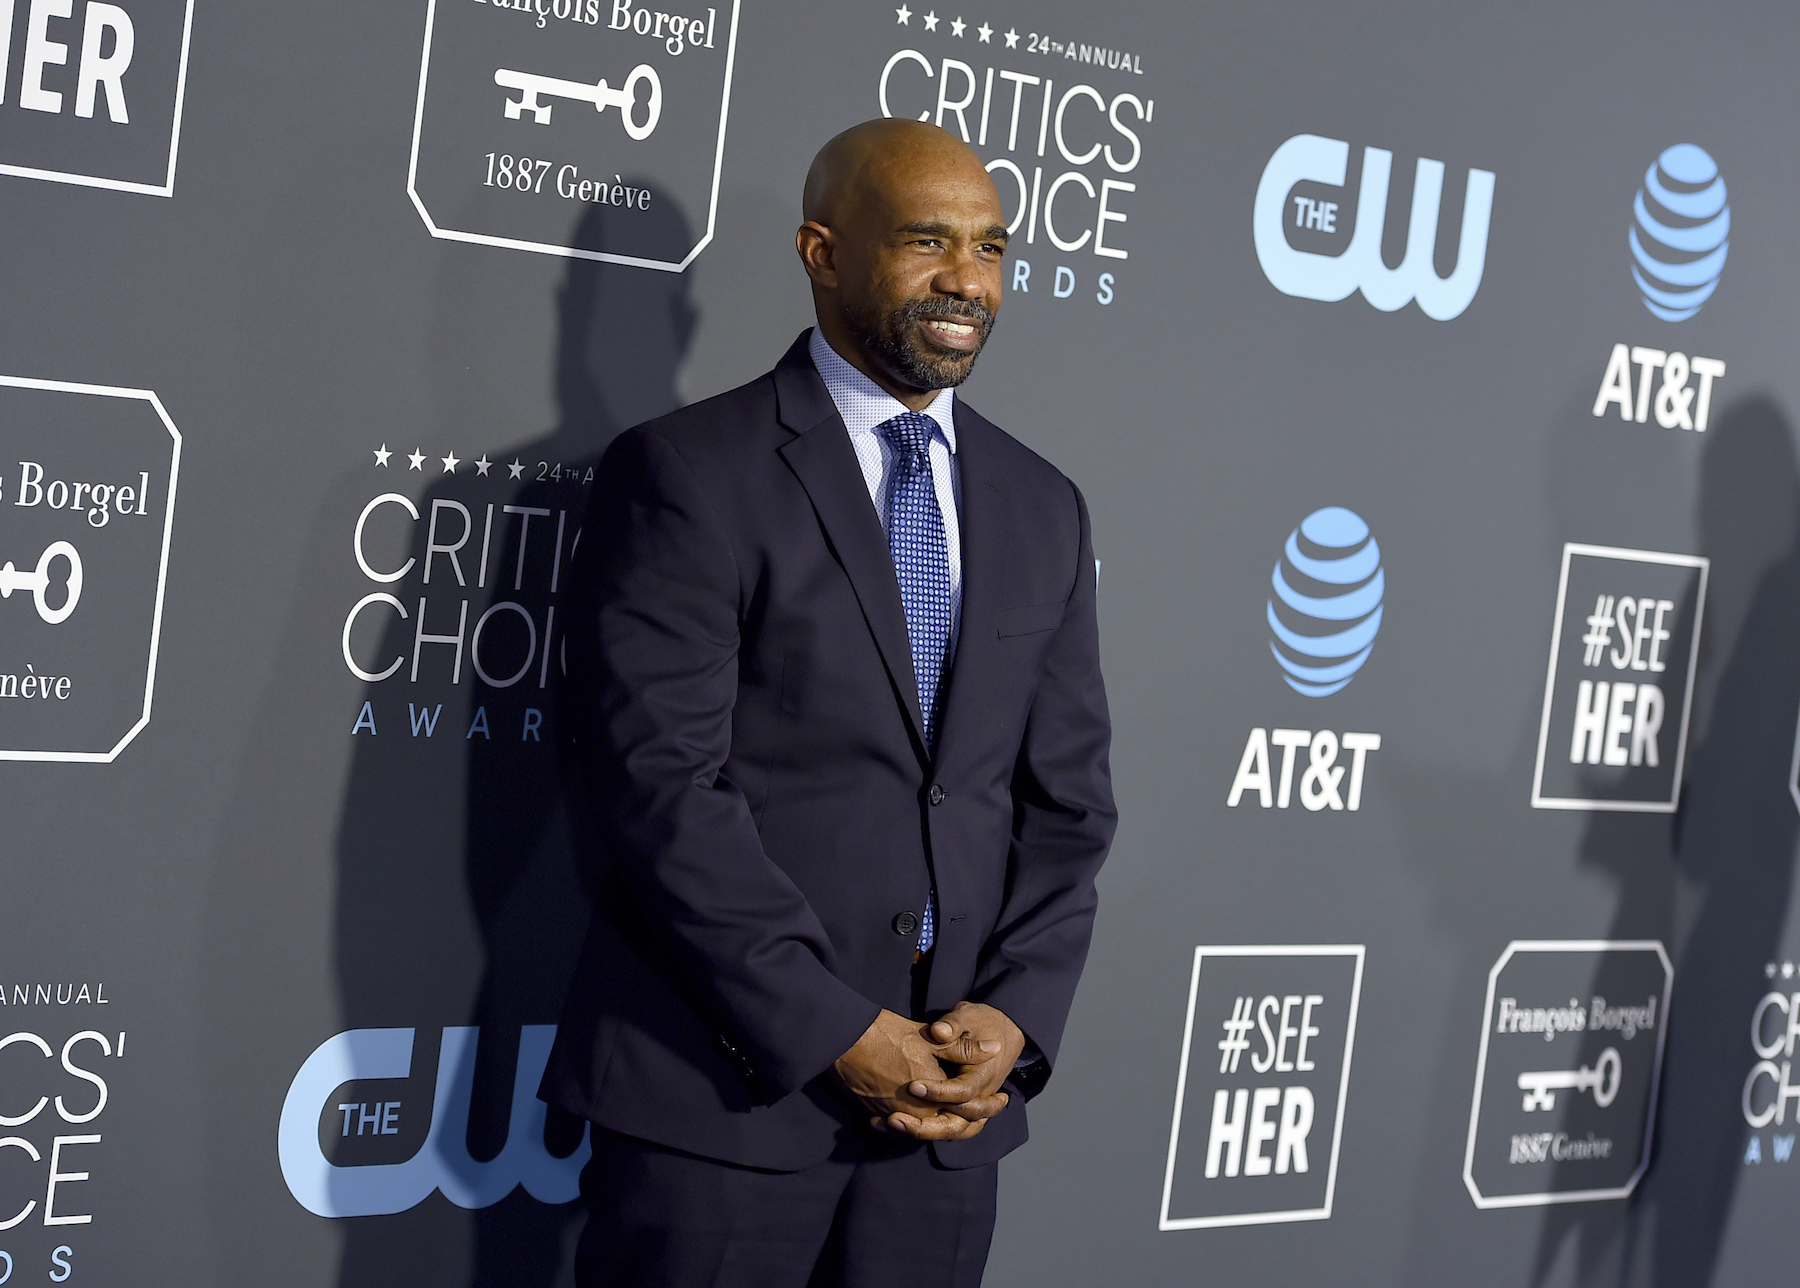 "<div class=""meta image-caption""><div class=""origin-logo origin-image ap""><span>AP</span></div><span class=""caption-text"">Michael Beach arrives at the 24th annual Critics' Choice Awards on Sunday, Jan. 13, 2019, at the Barker Hangar in Santa Monica, Calif. (Jordan Strauss/Invision/AP)</span></div>"